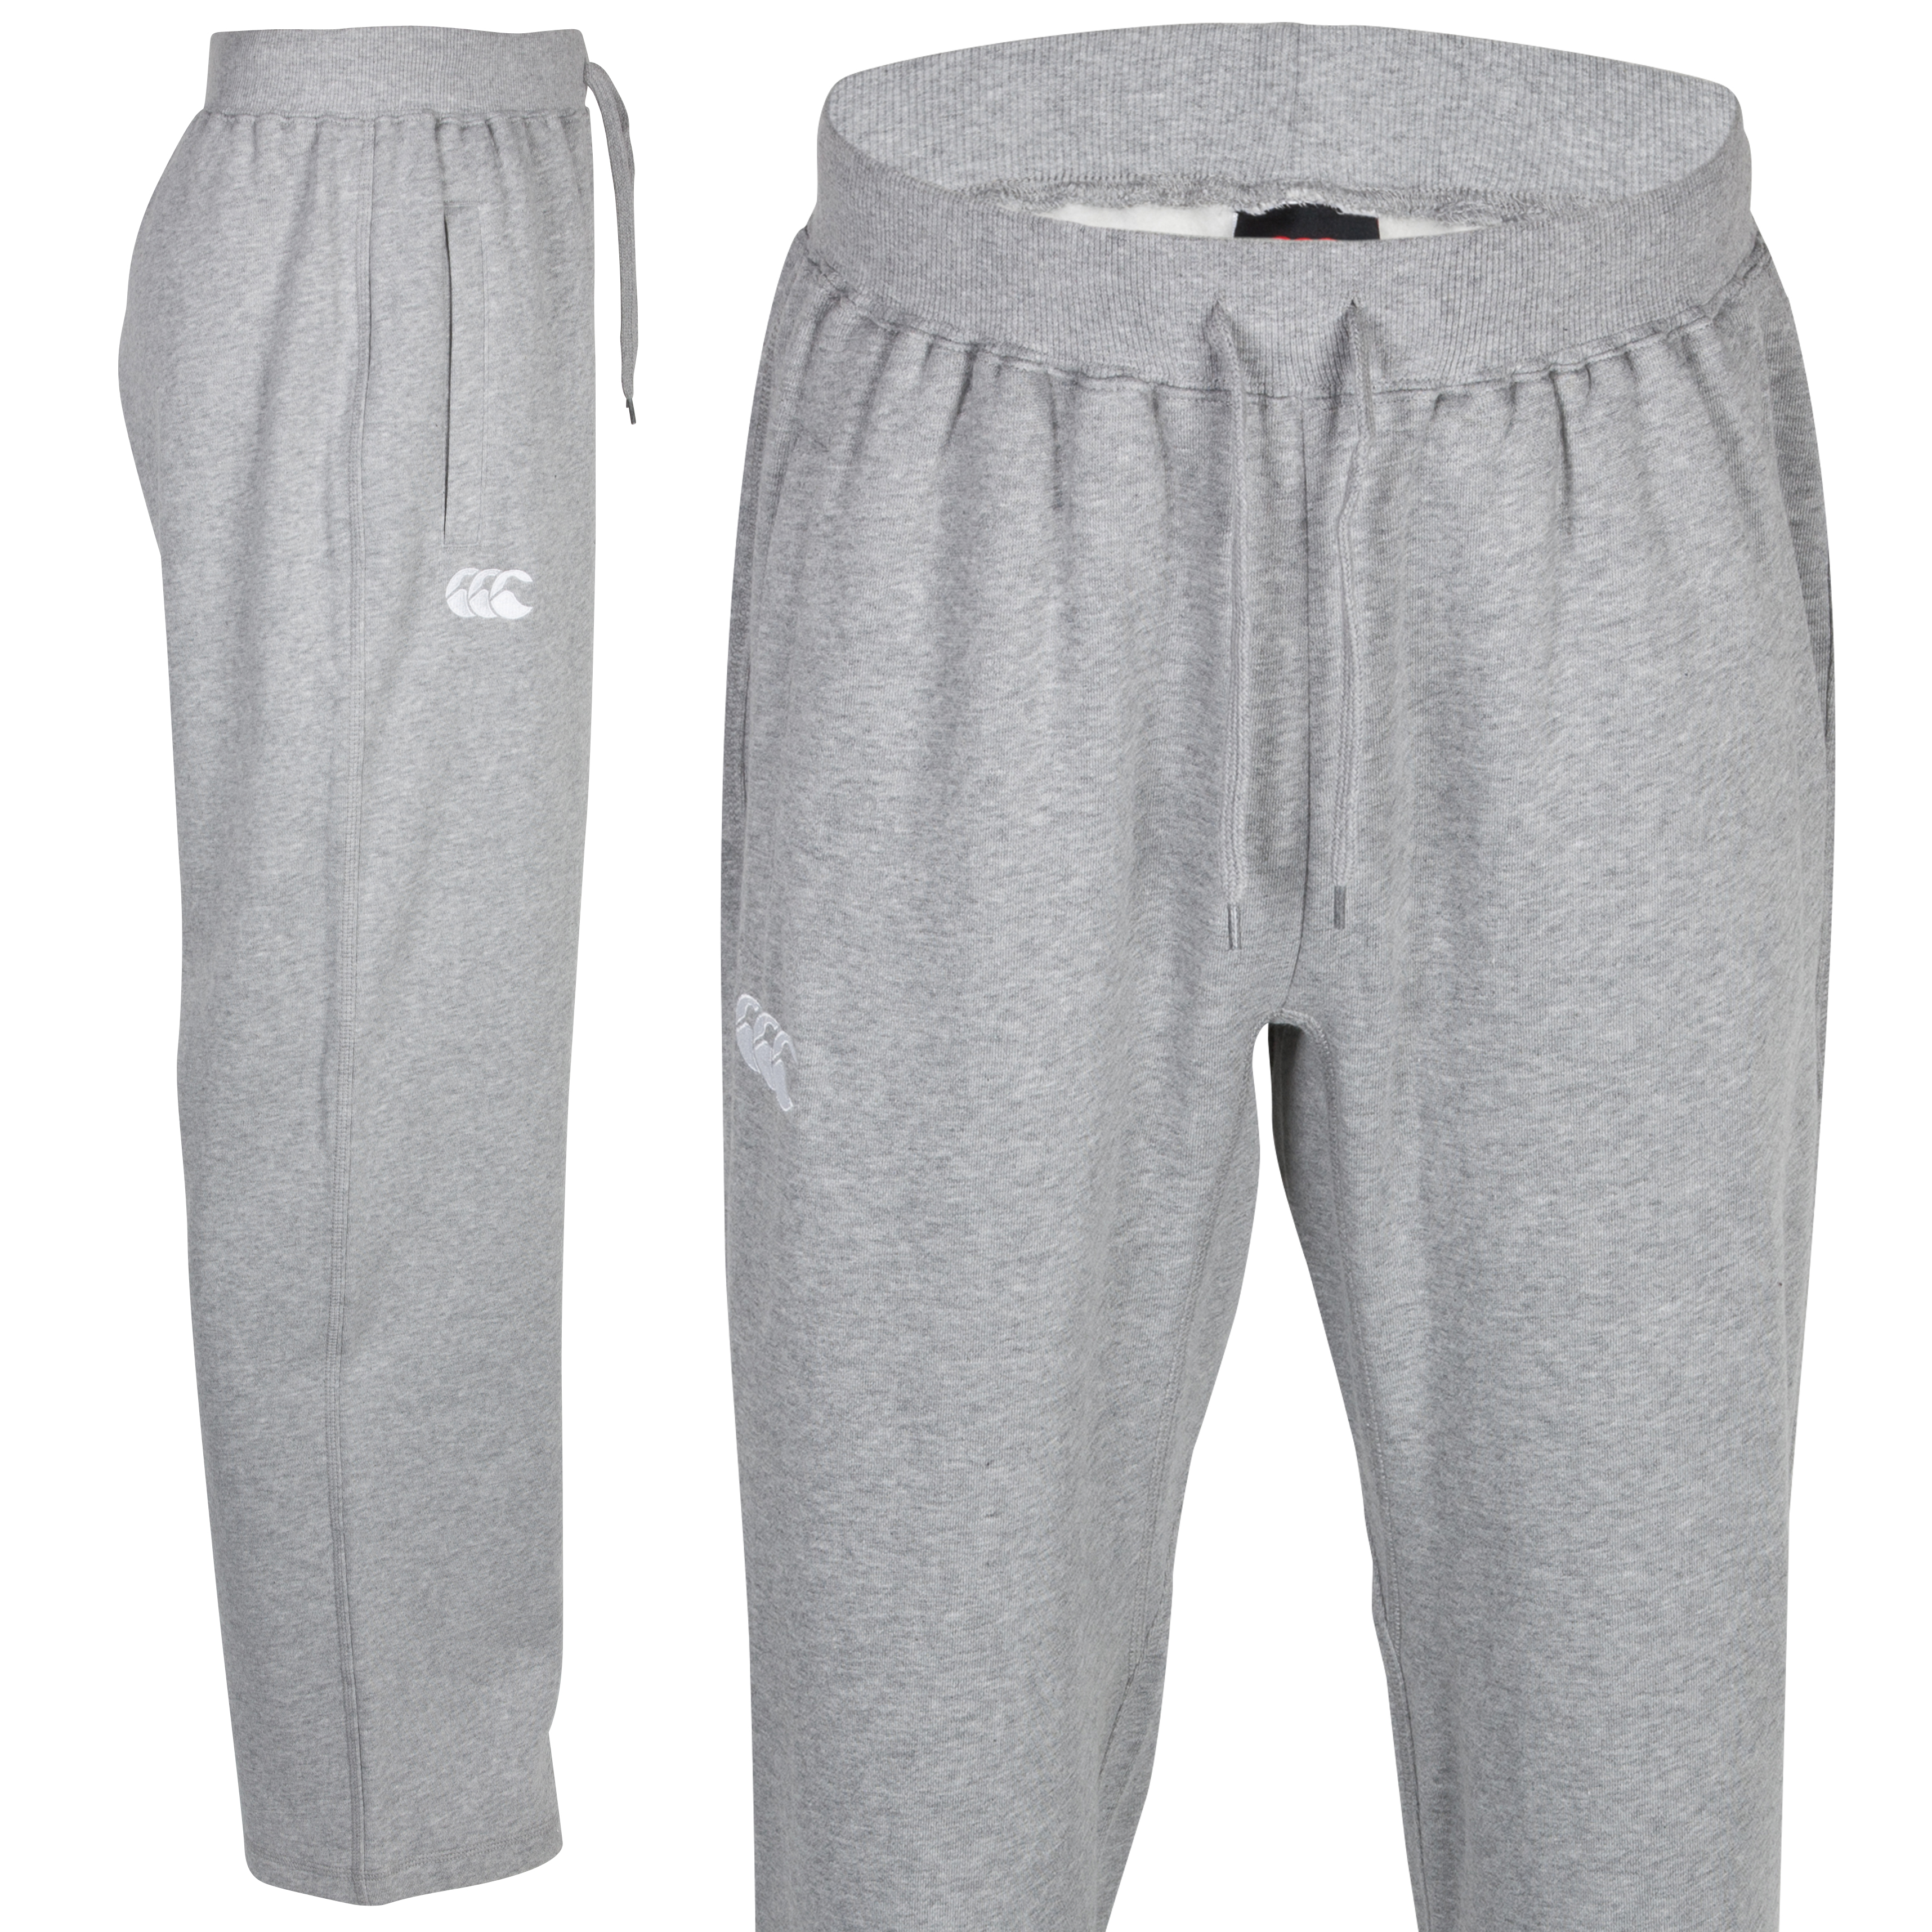 Canterbury Combination Sweat Pant - Classic Marl